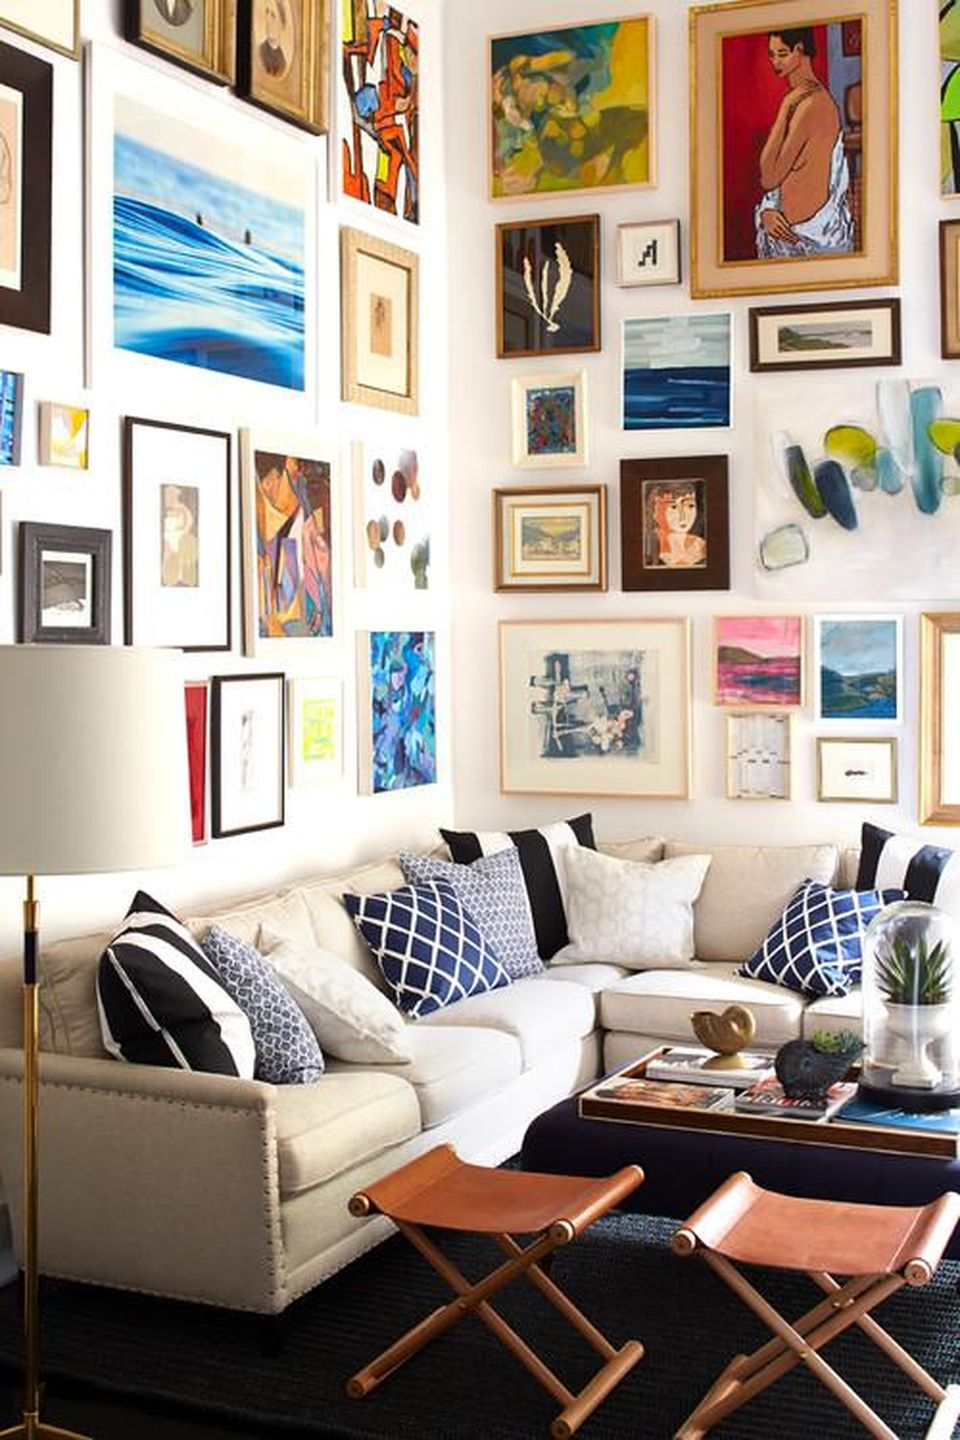 How To Design And Lay Out A Small Living Room in 2020 ...